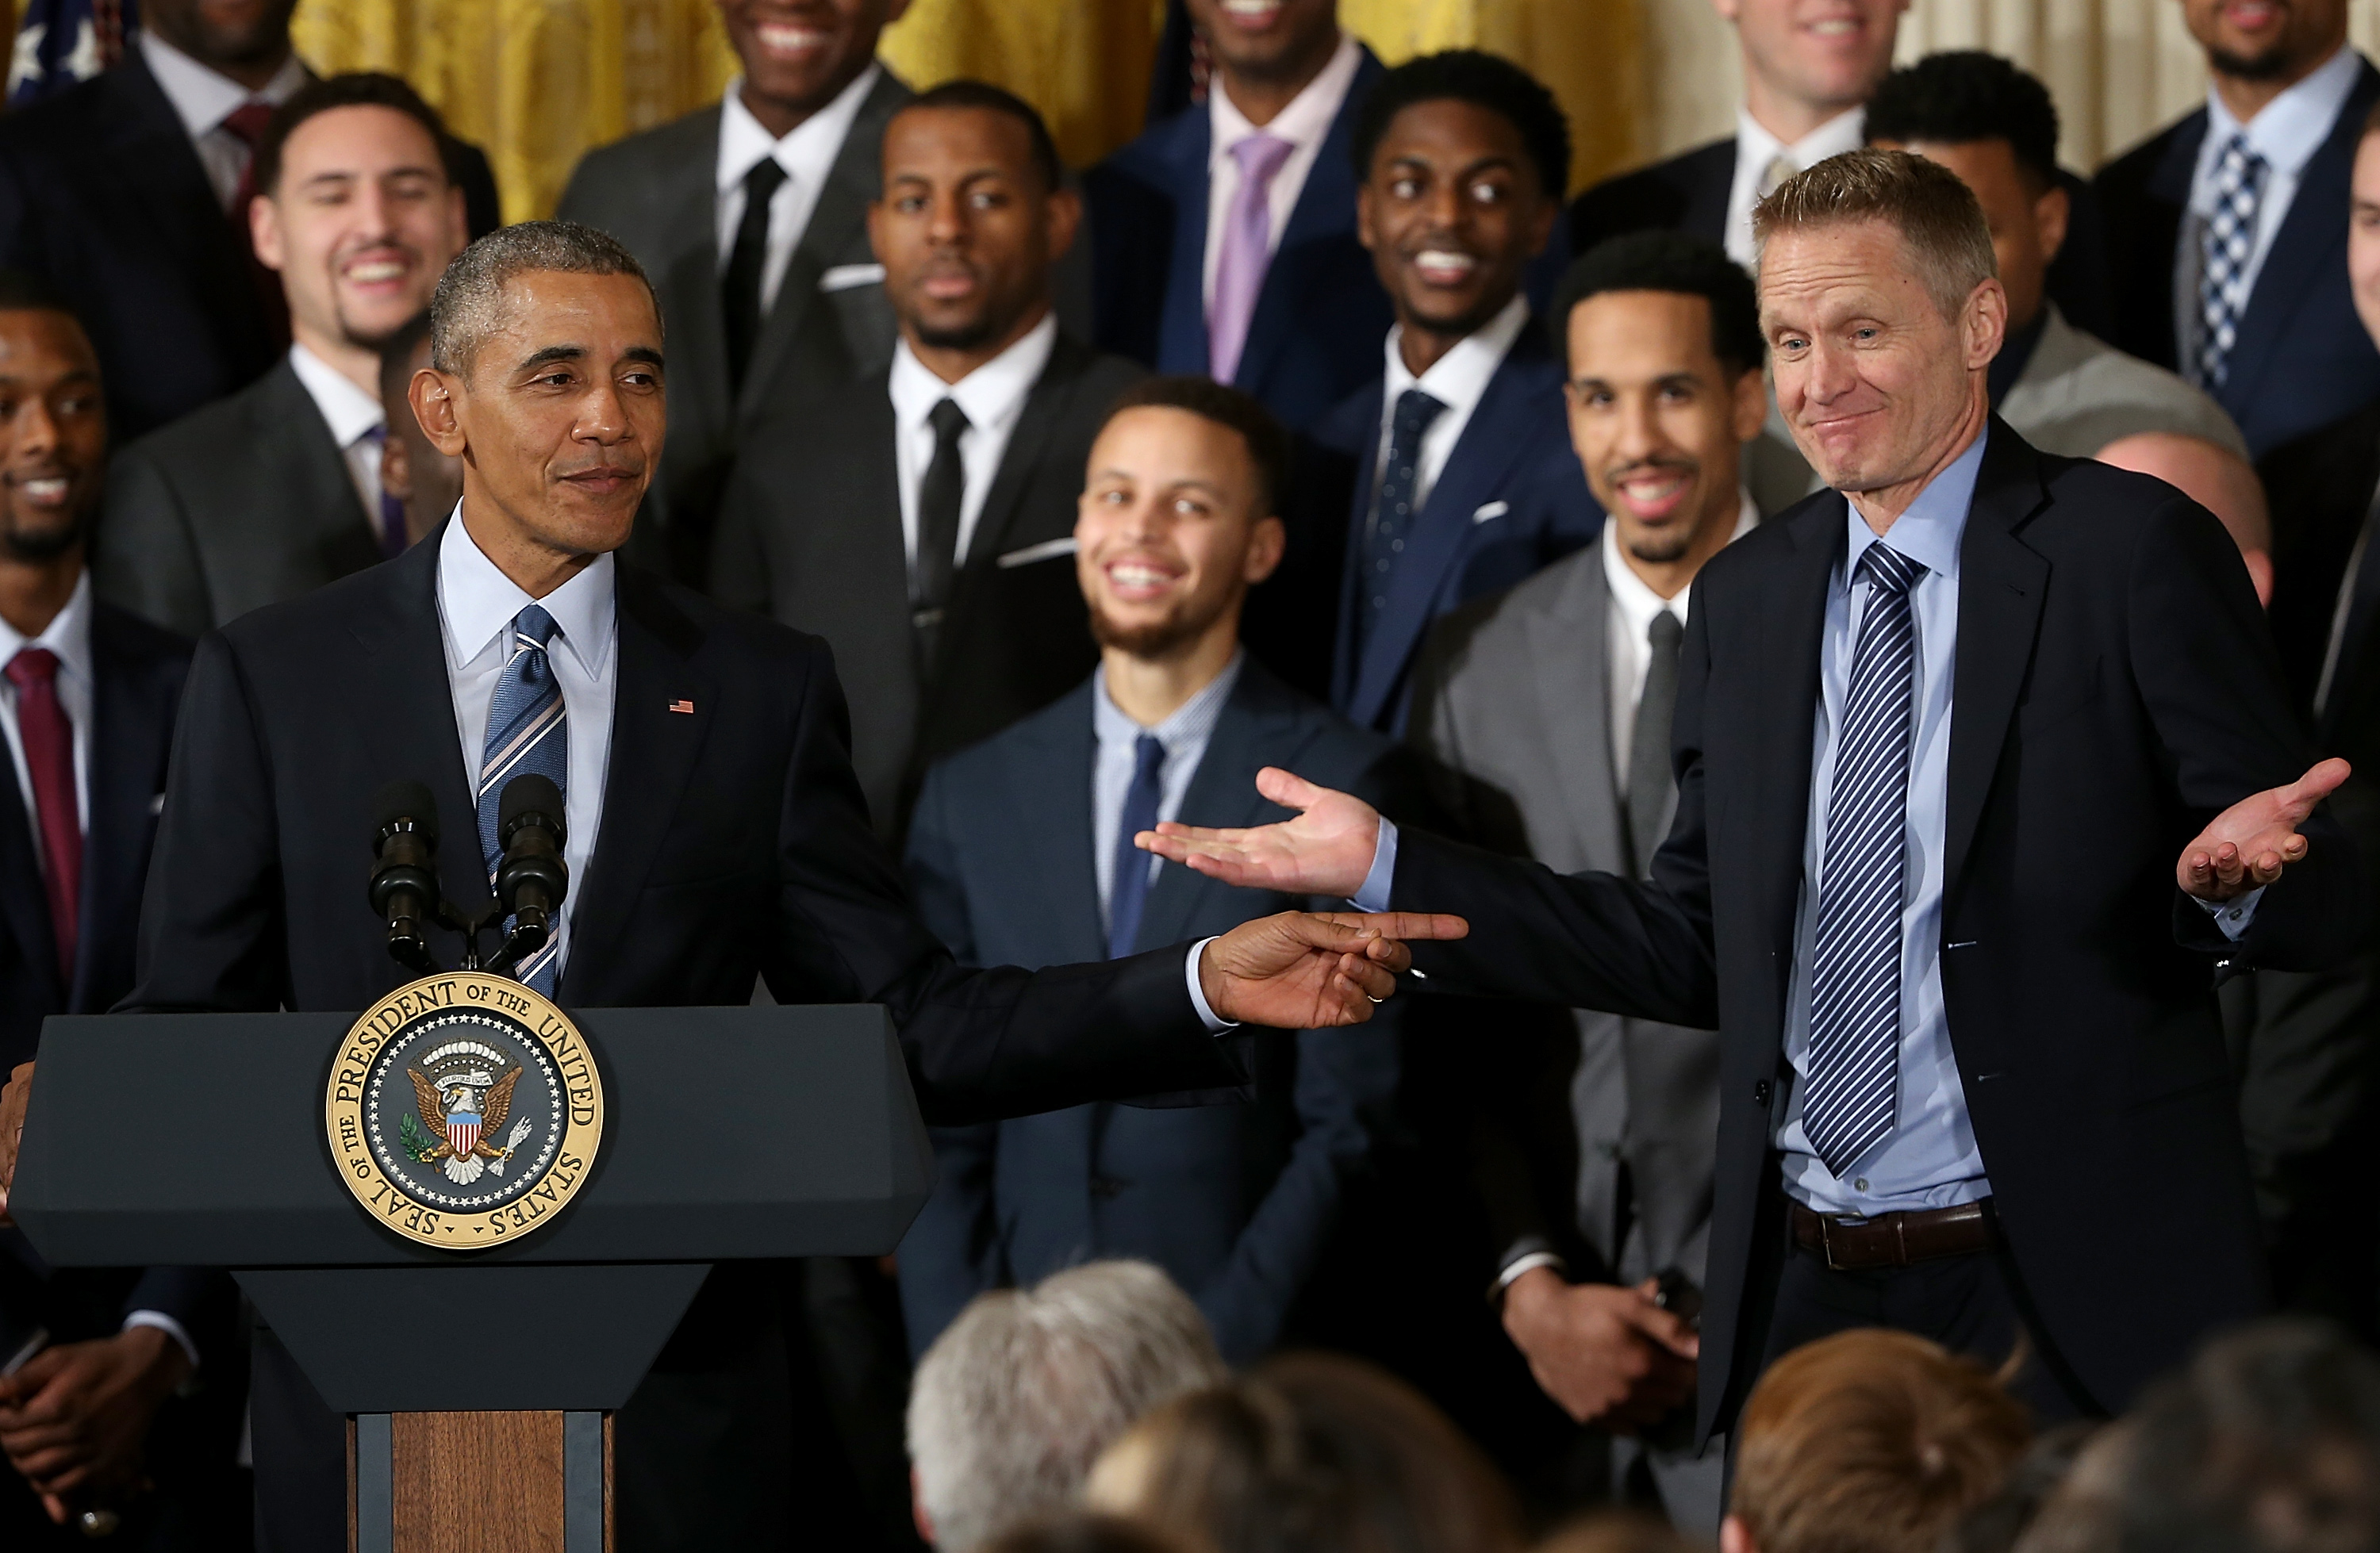 Obama Welcomes 2015 NBA Champion Golden State Warriors To White House